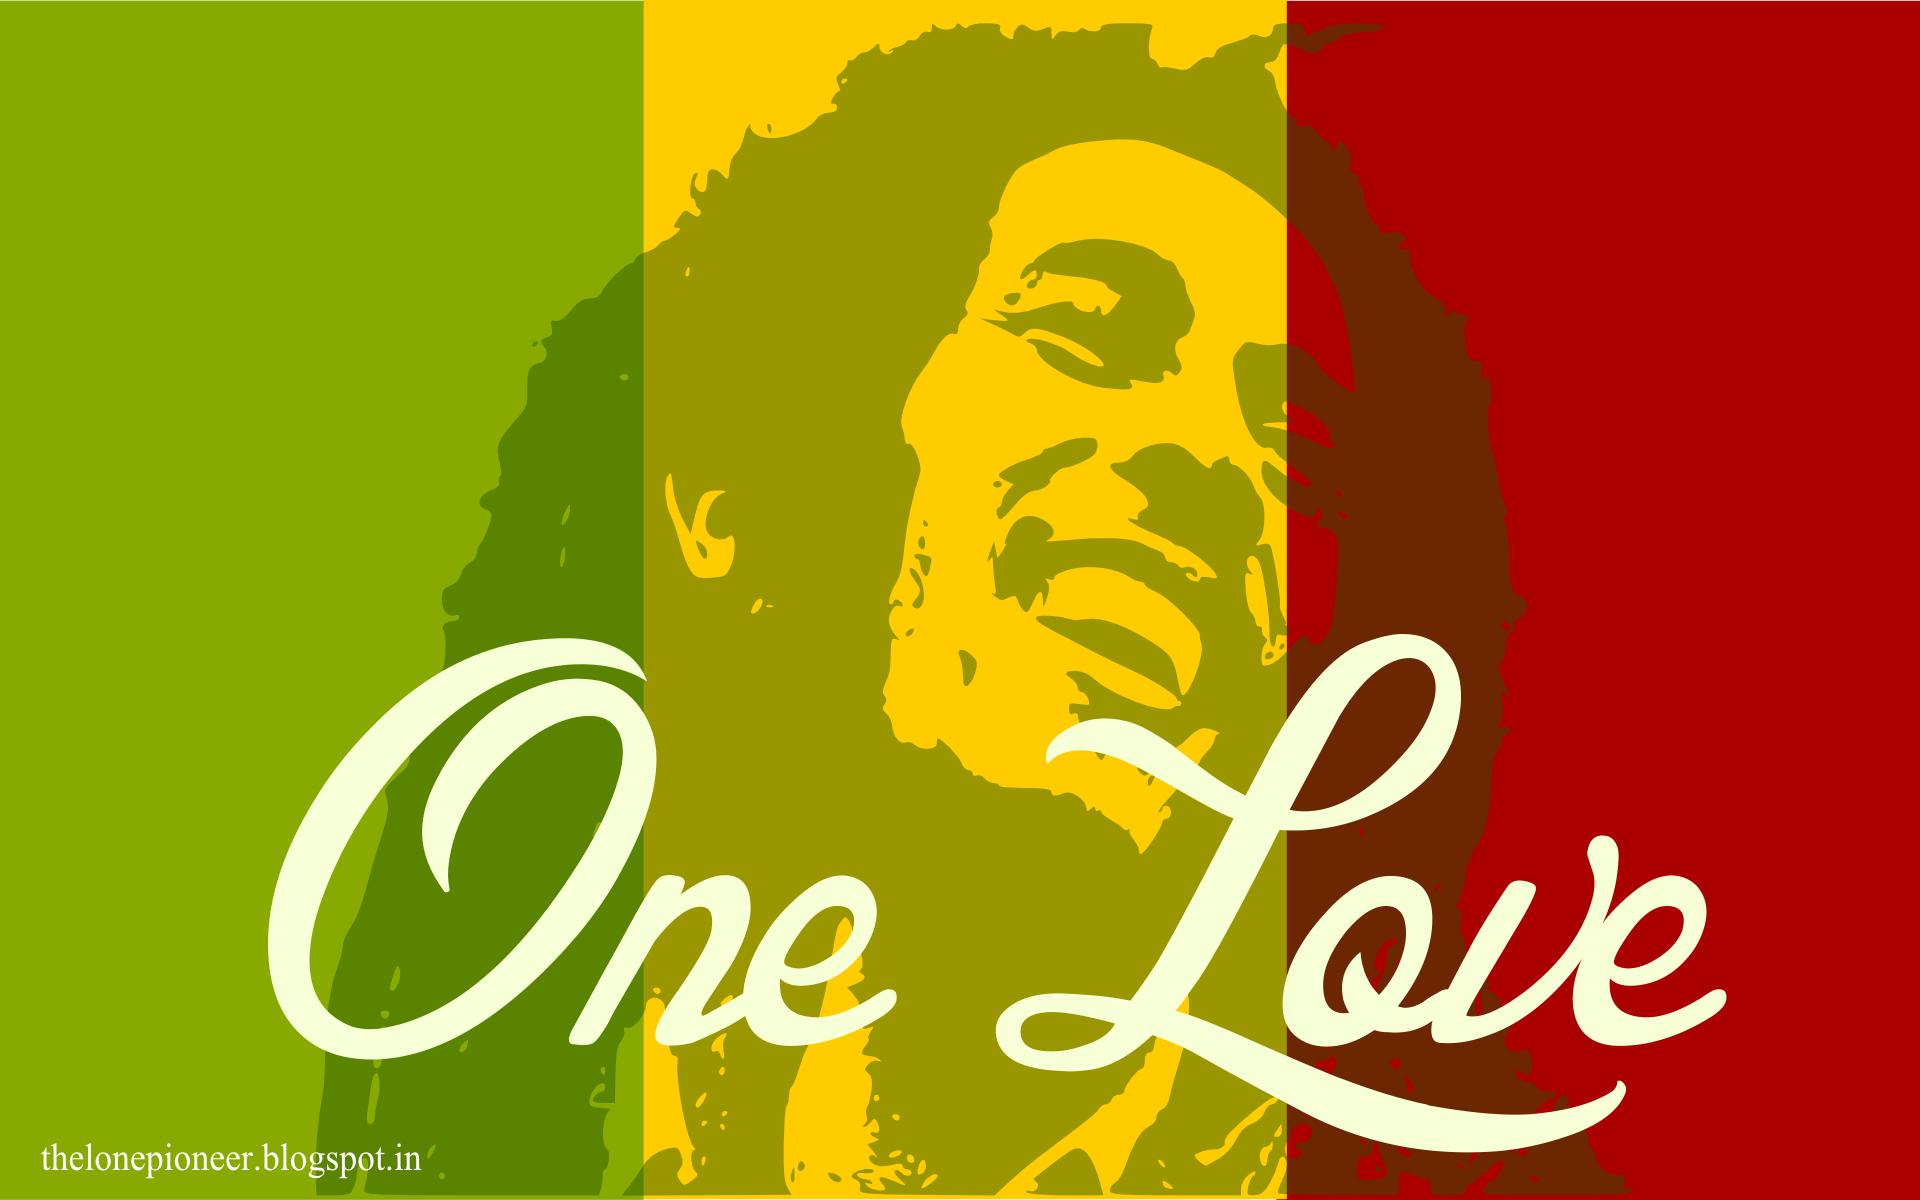 Bob Marley One Love Wallpaper Full Hd Desktop Wallpaper